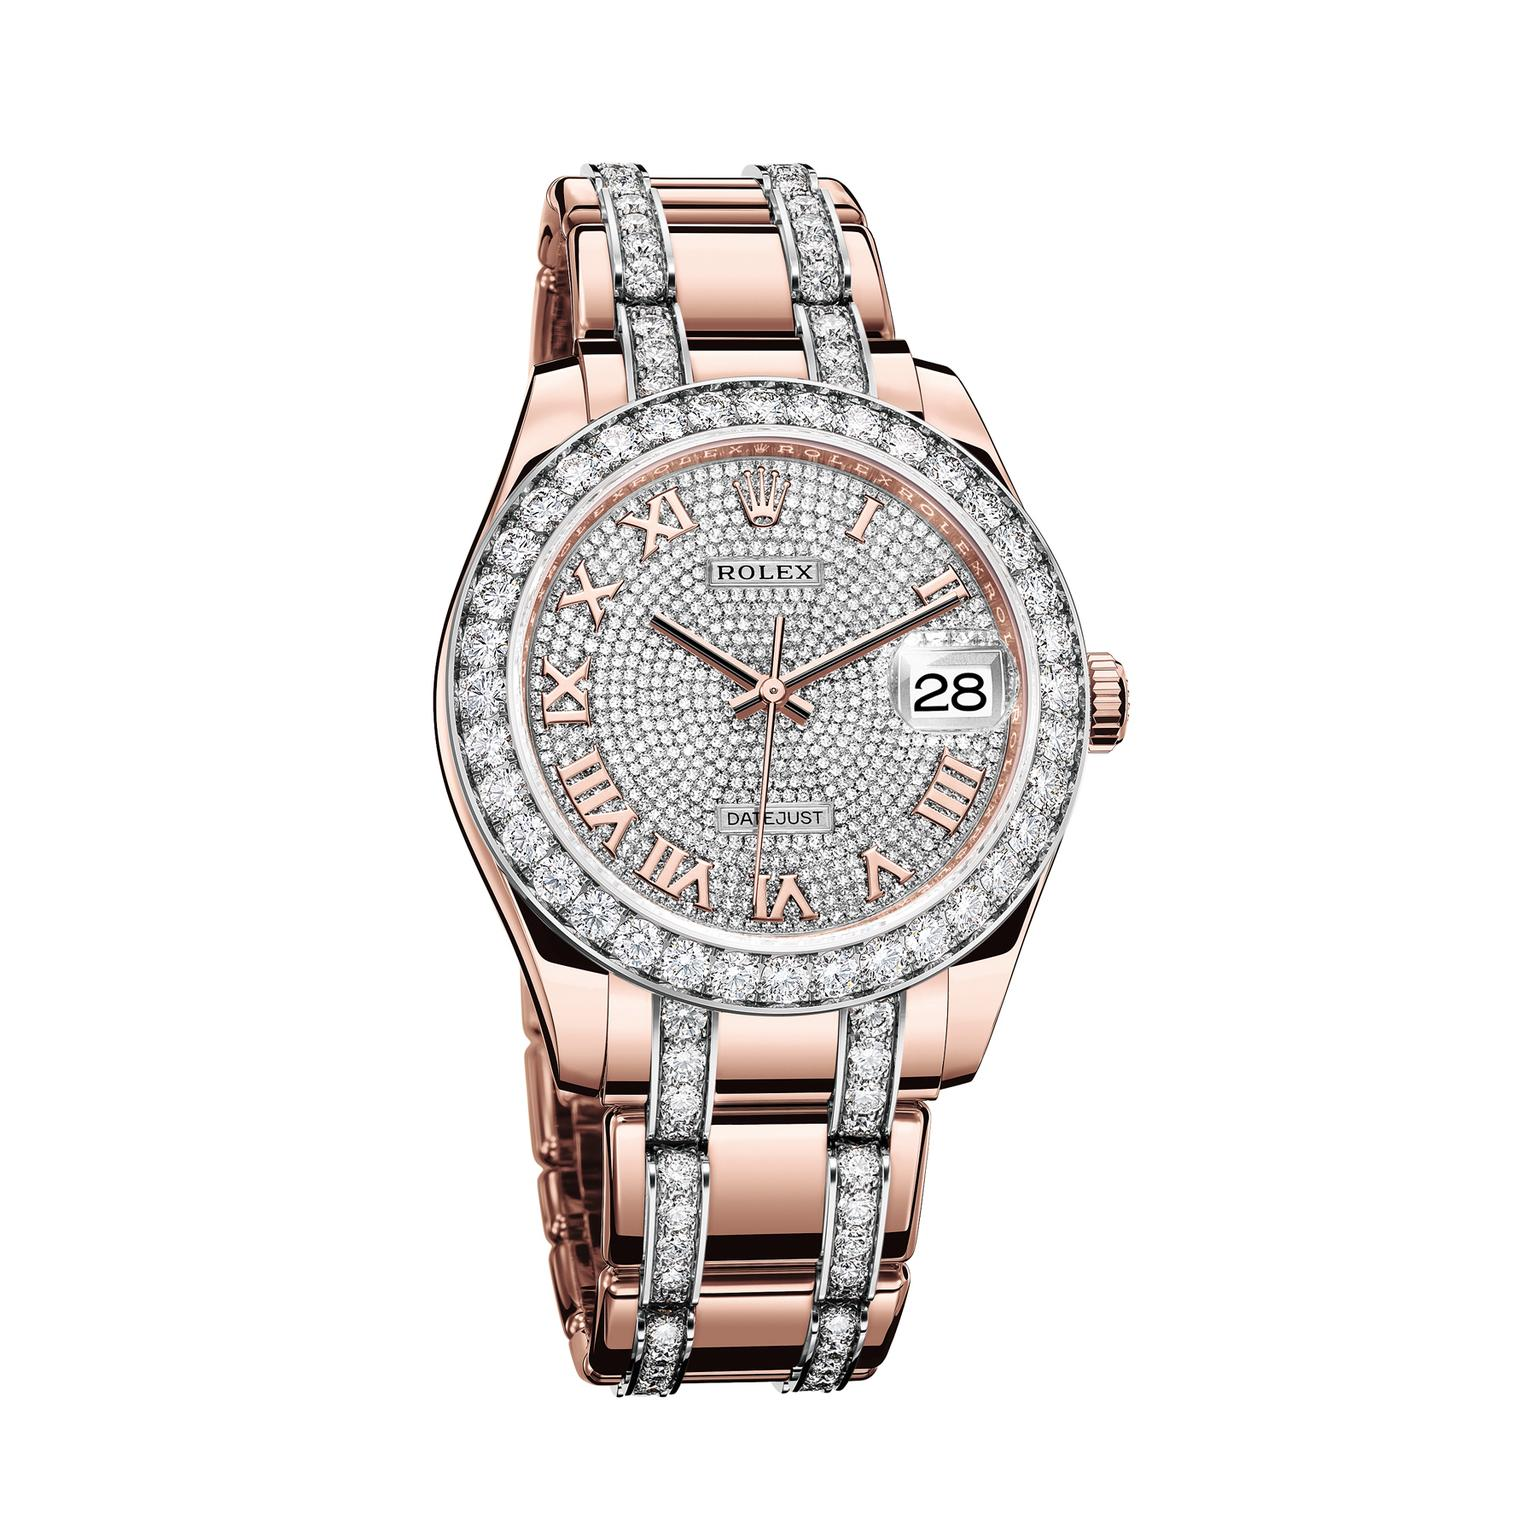 Rolex Pearlmaster 39mm watch in Everose gold with diamonds